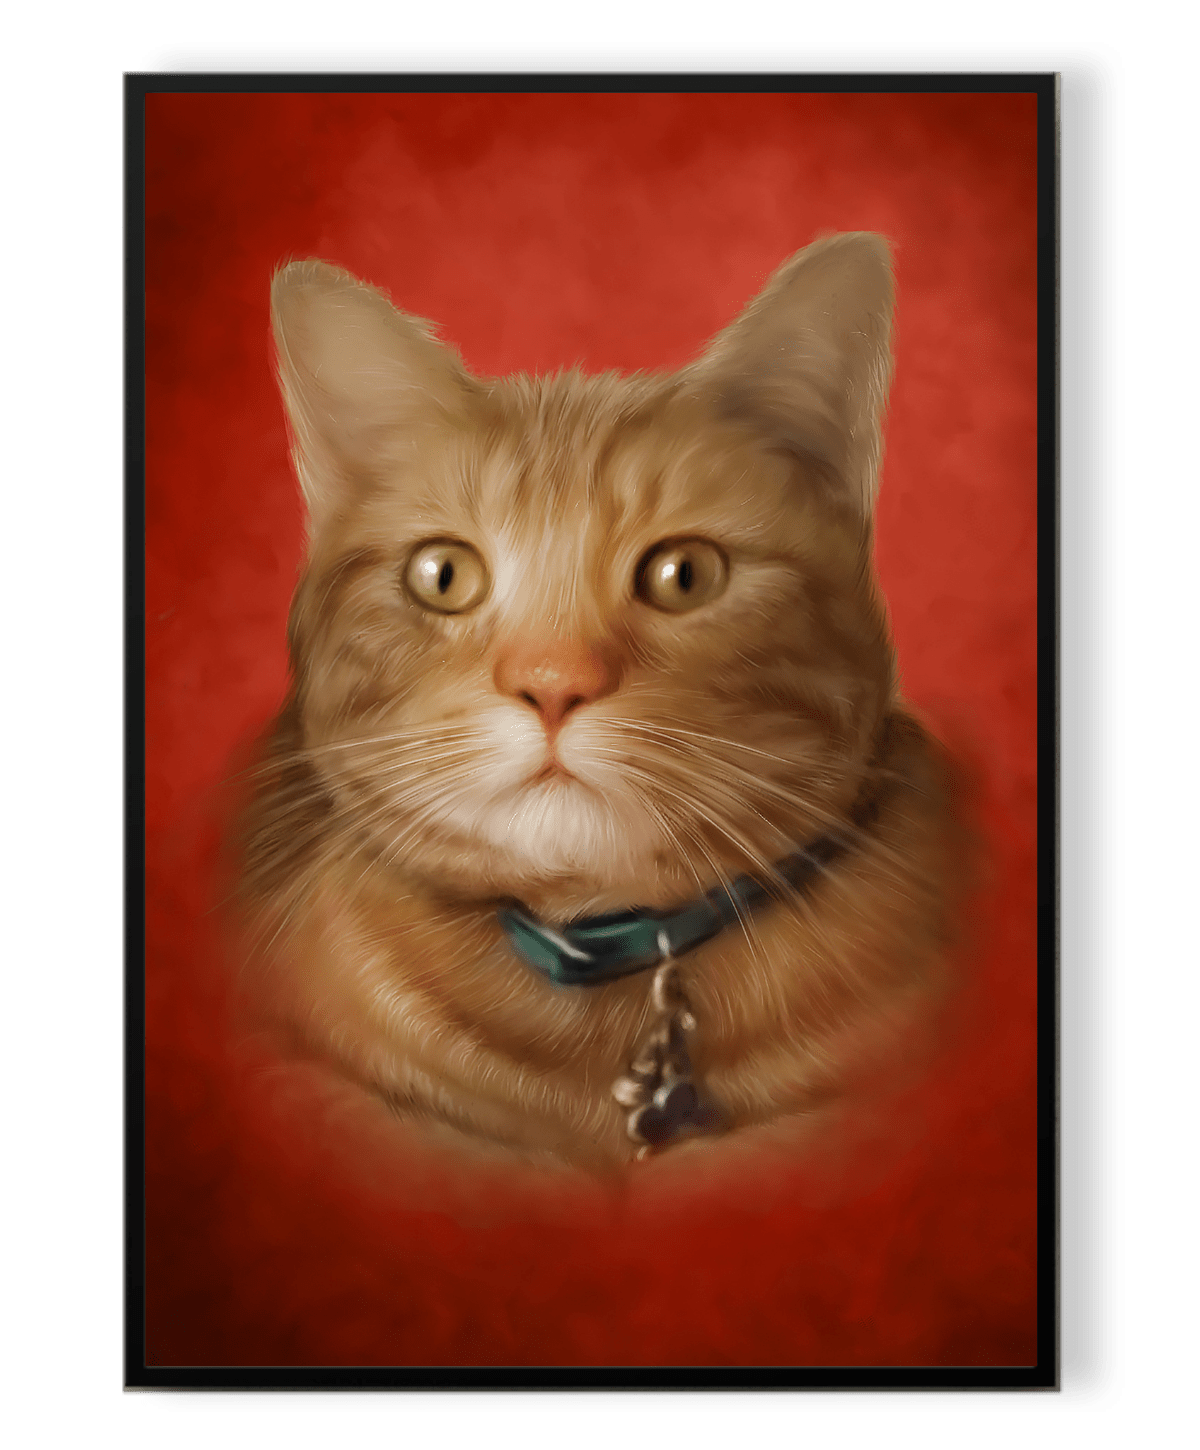 One cat on inside a frame with red background